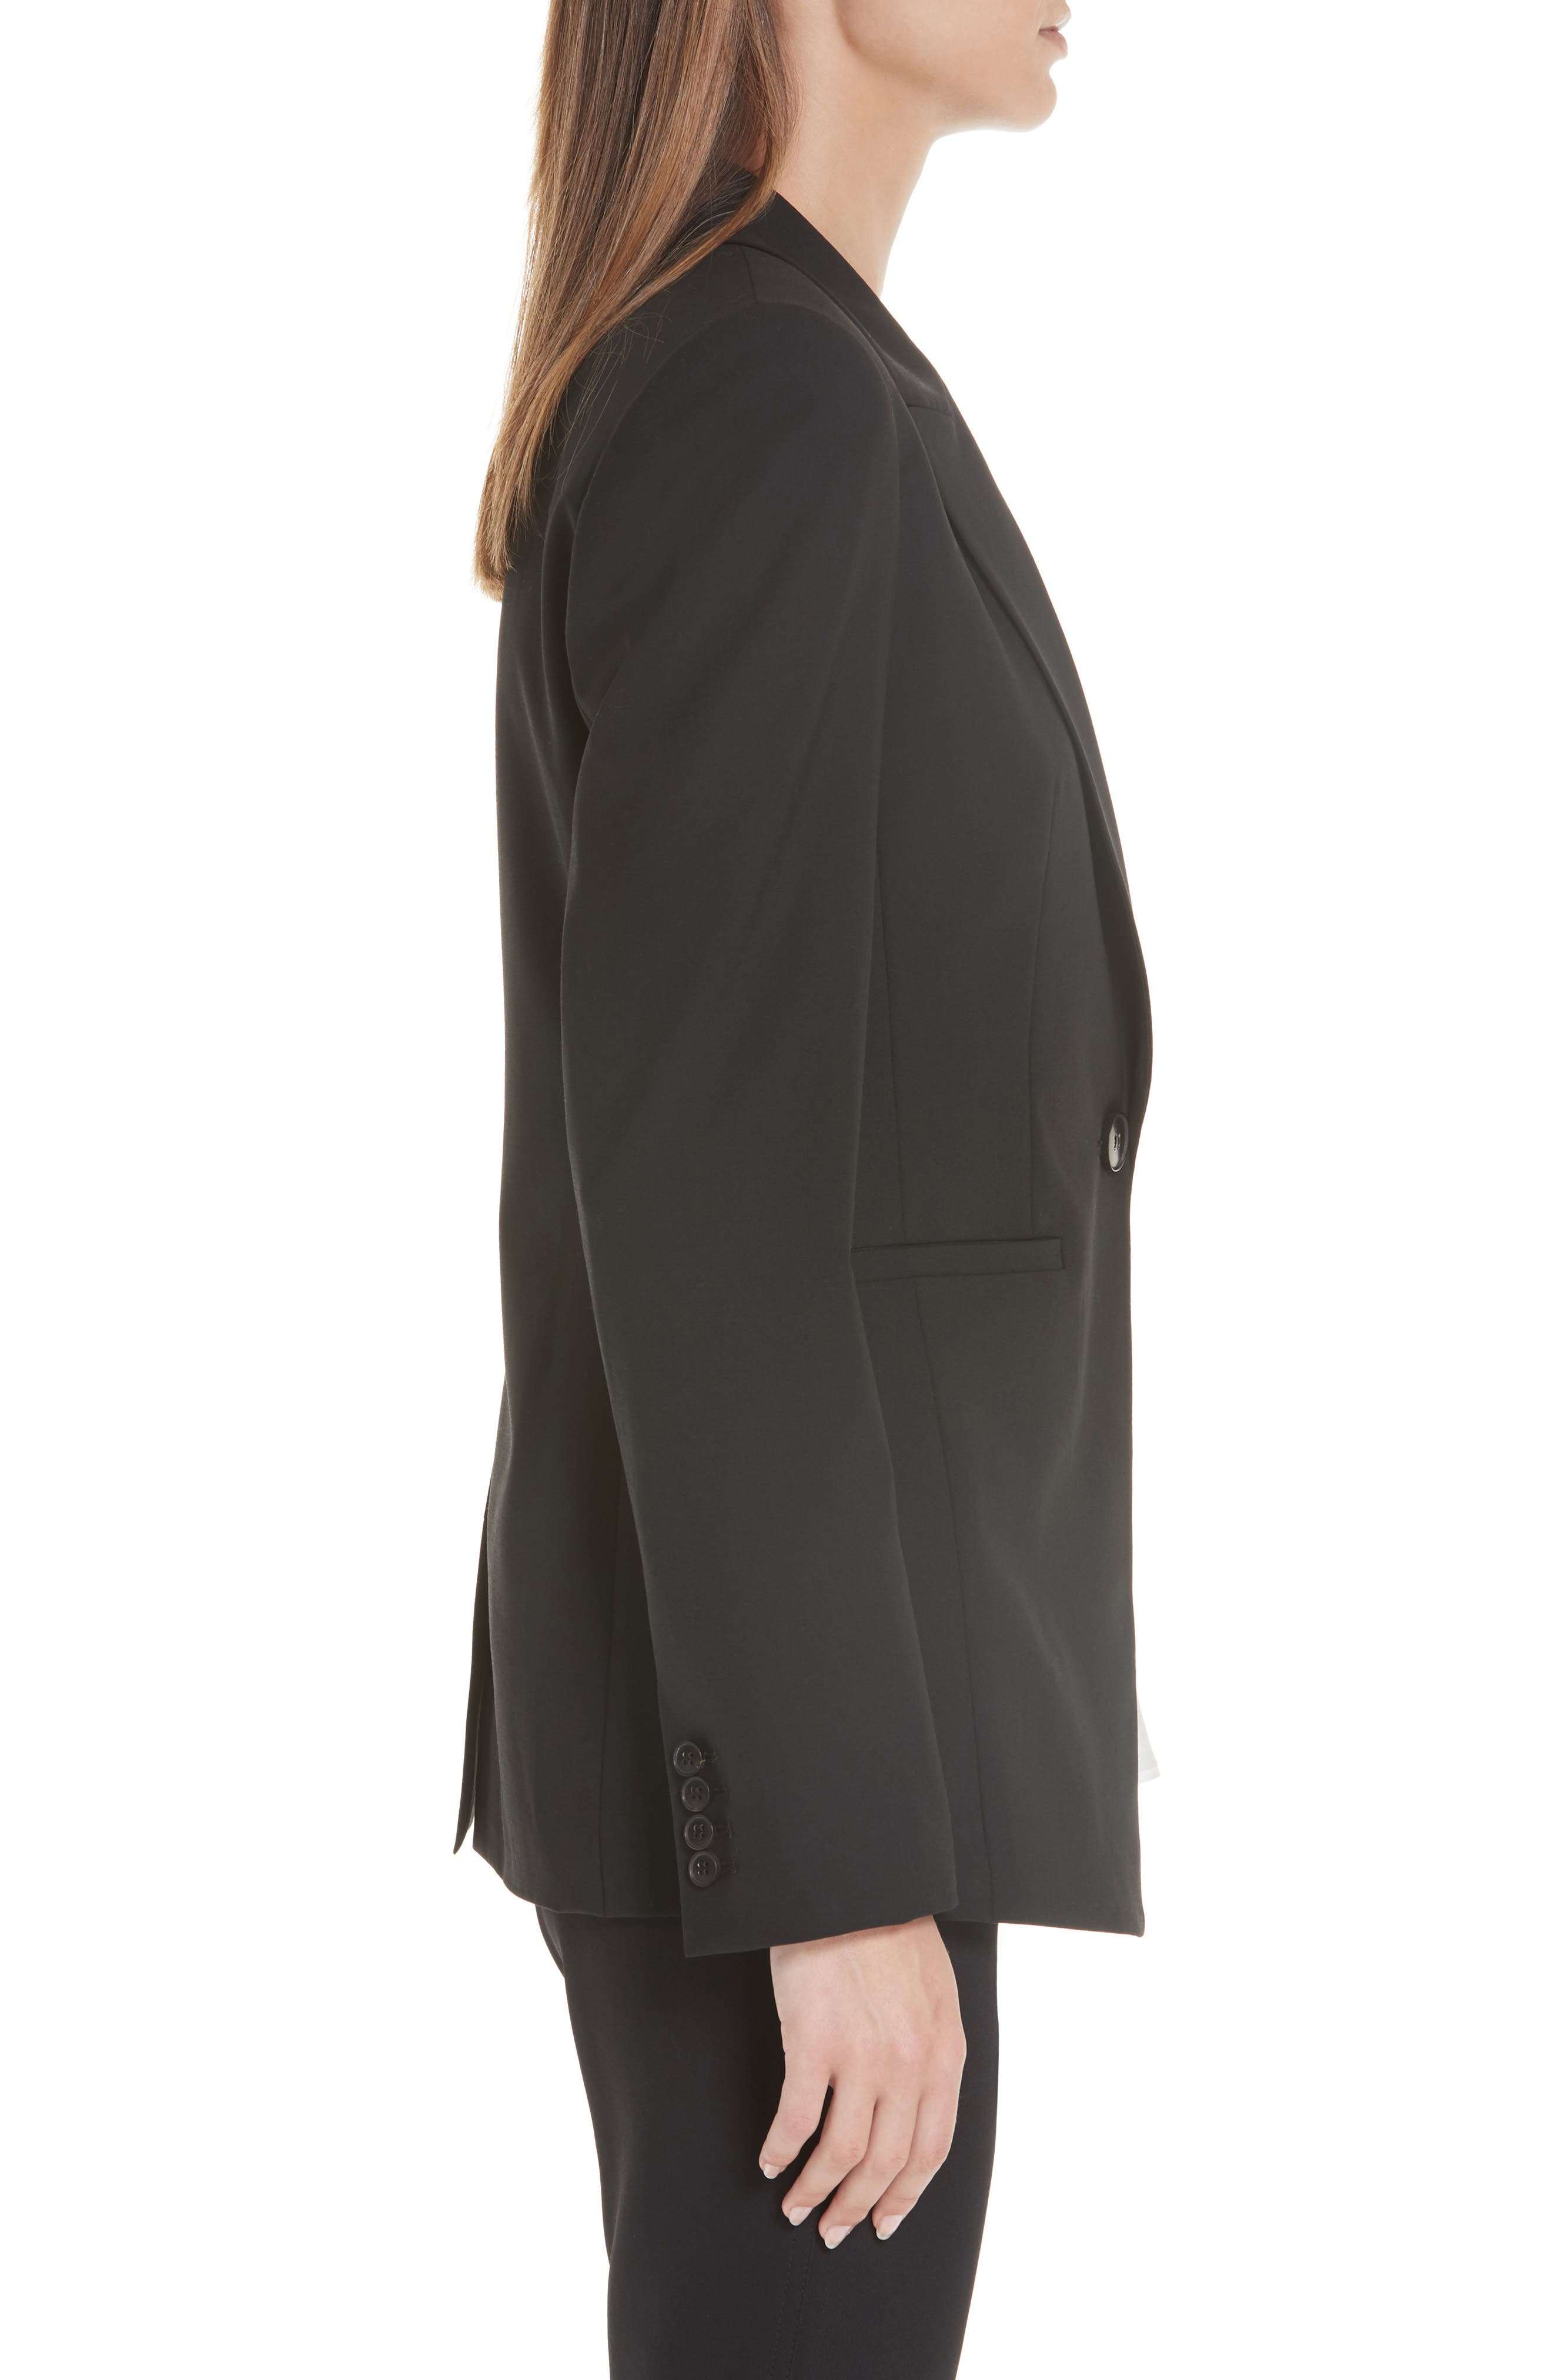 LAFAYETTE 148 NEW YORK, Charice Stretch Wool Jacket, Alternate thumbnail 5, color, BLACK